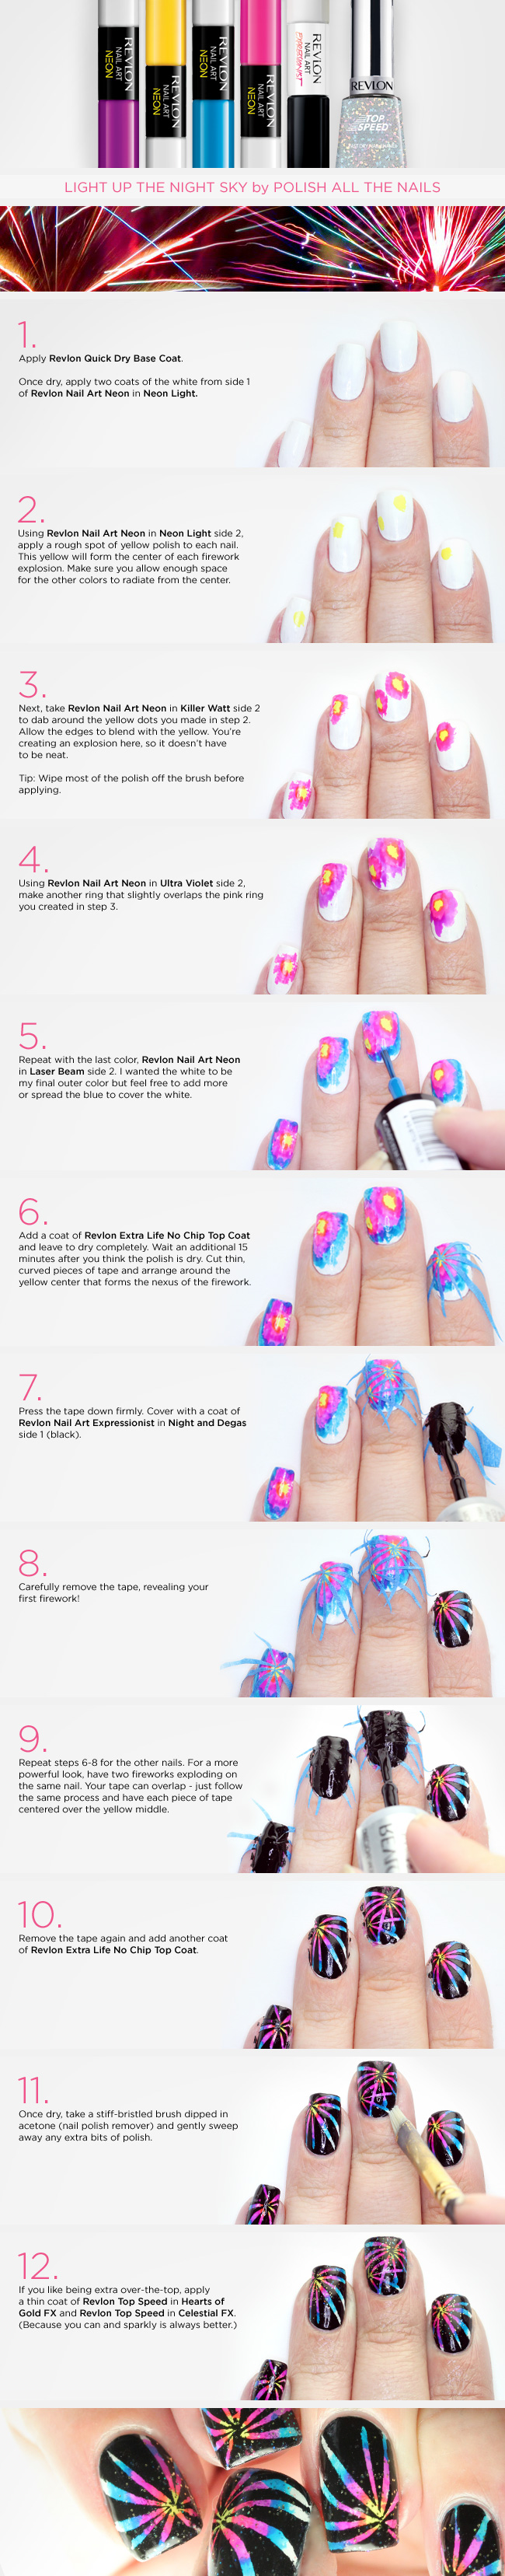 Light Up the Night Sky: Fireworks Nails Tutorial - Xoxo Emmy